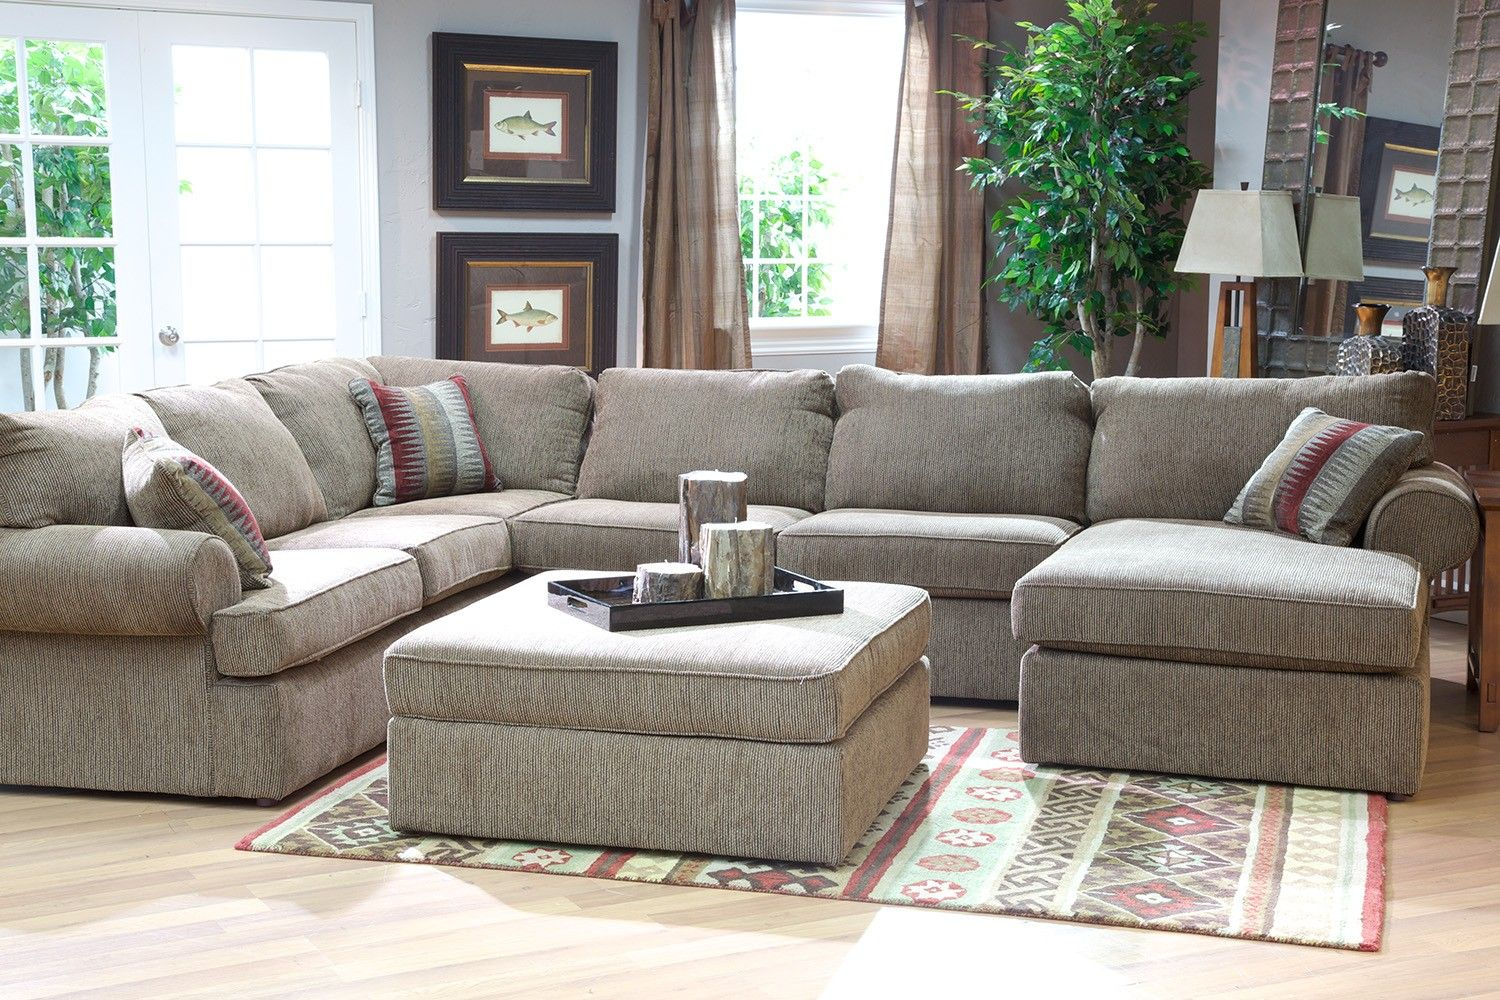 Delicieux Napa Treasure Sectional Living Room   Living Room | Mor Furniture For Less